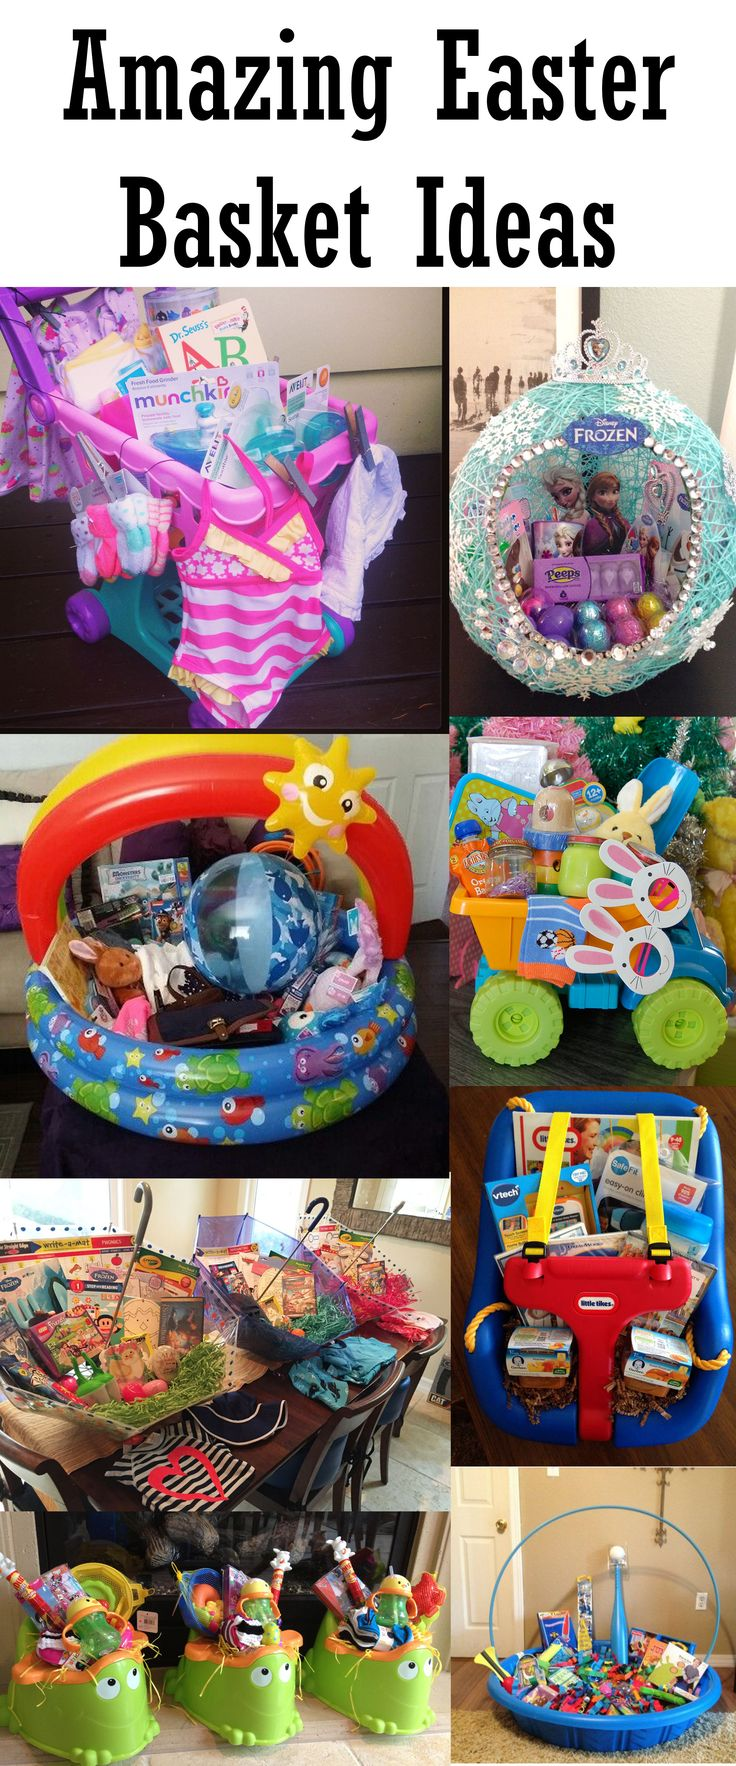 Best 25 baby easter basket ideas on pinterest easter baskets amazing easter basket ideas 1 negle Choice Image